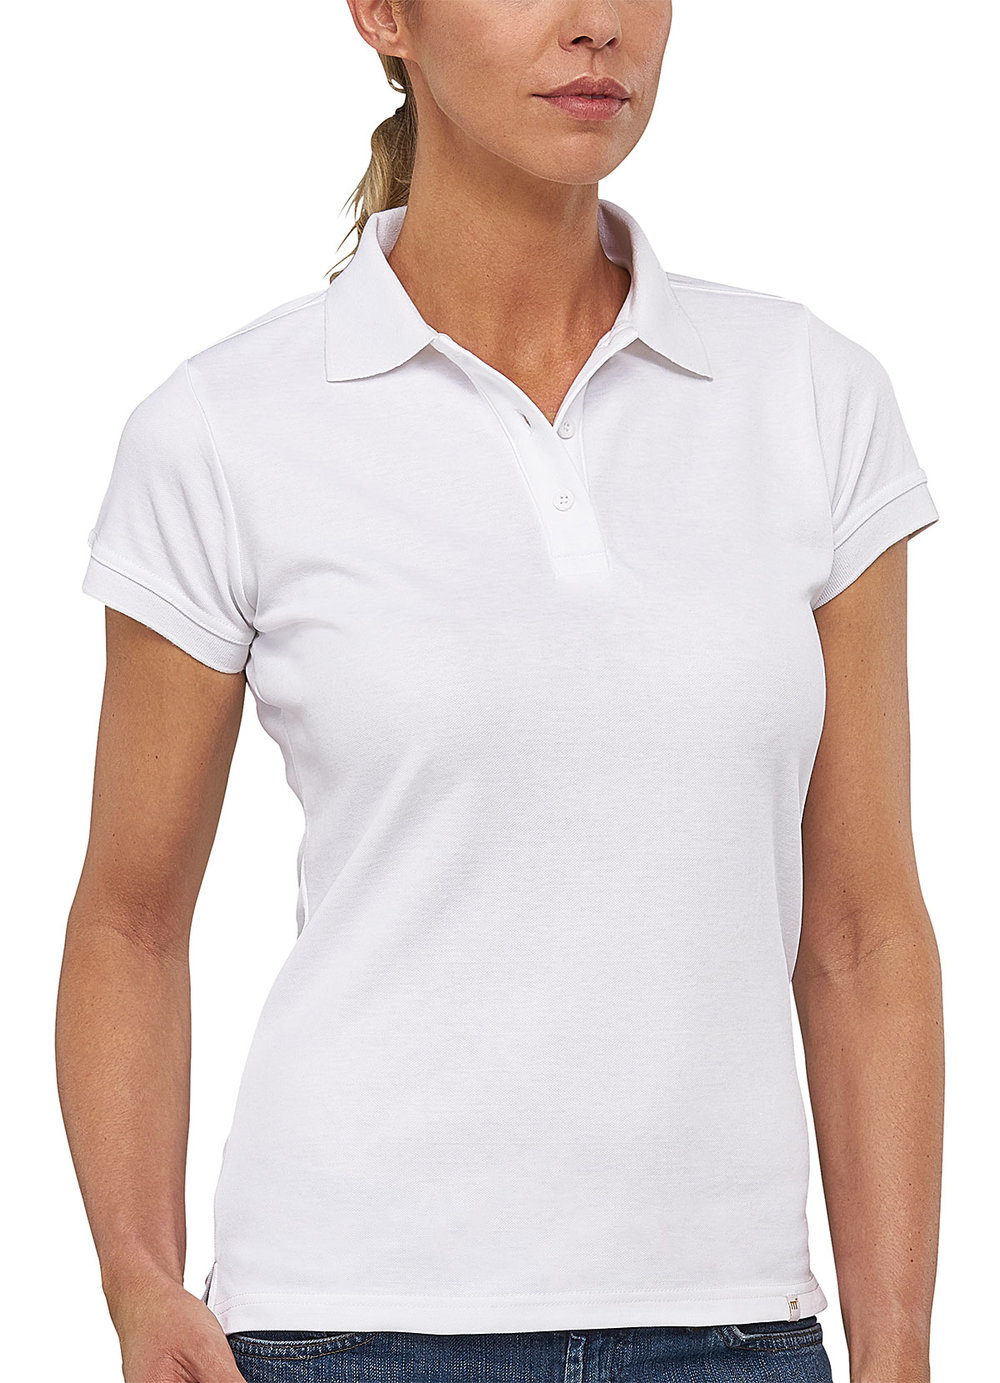 FLASH POWERDRY POLO SHIRT FEMALE MACWHITE